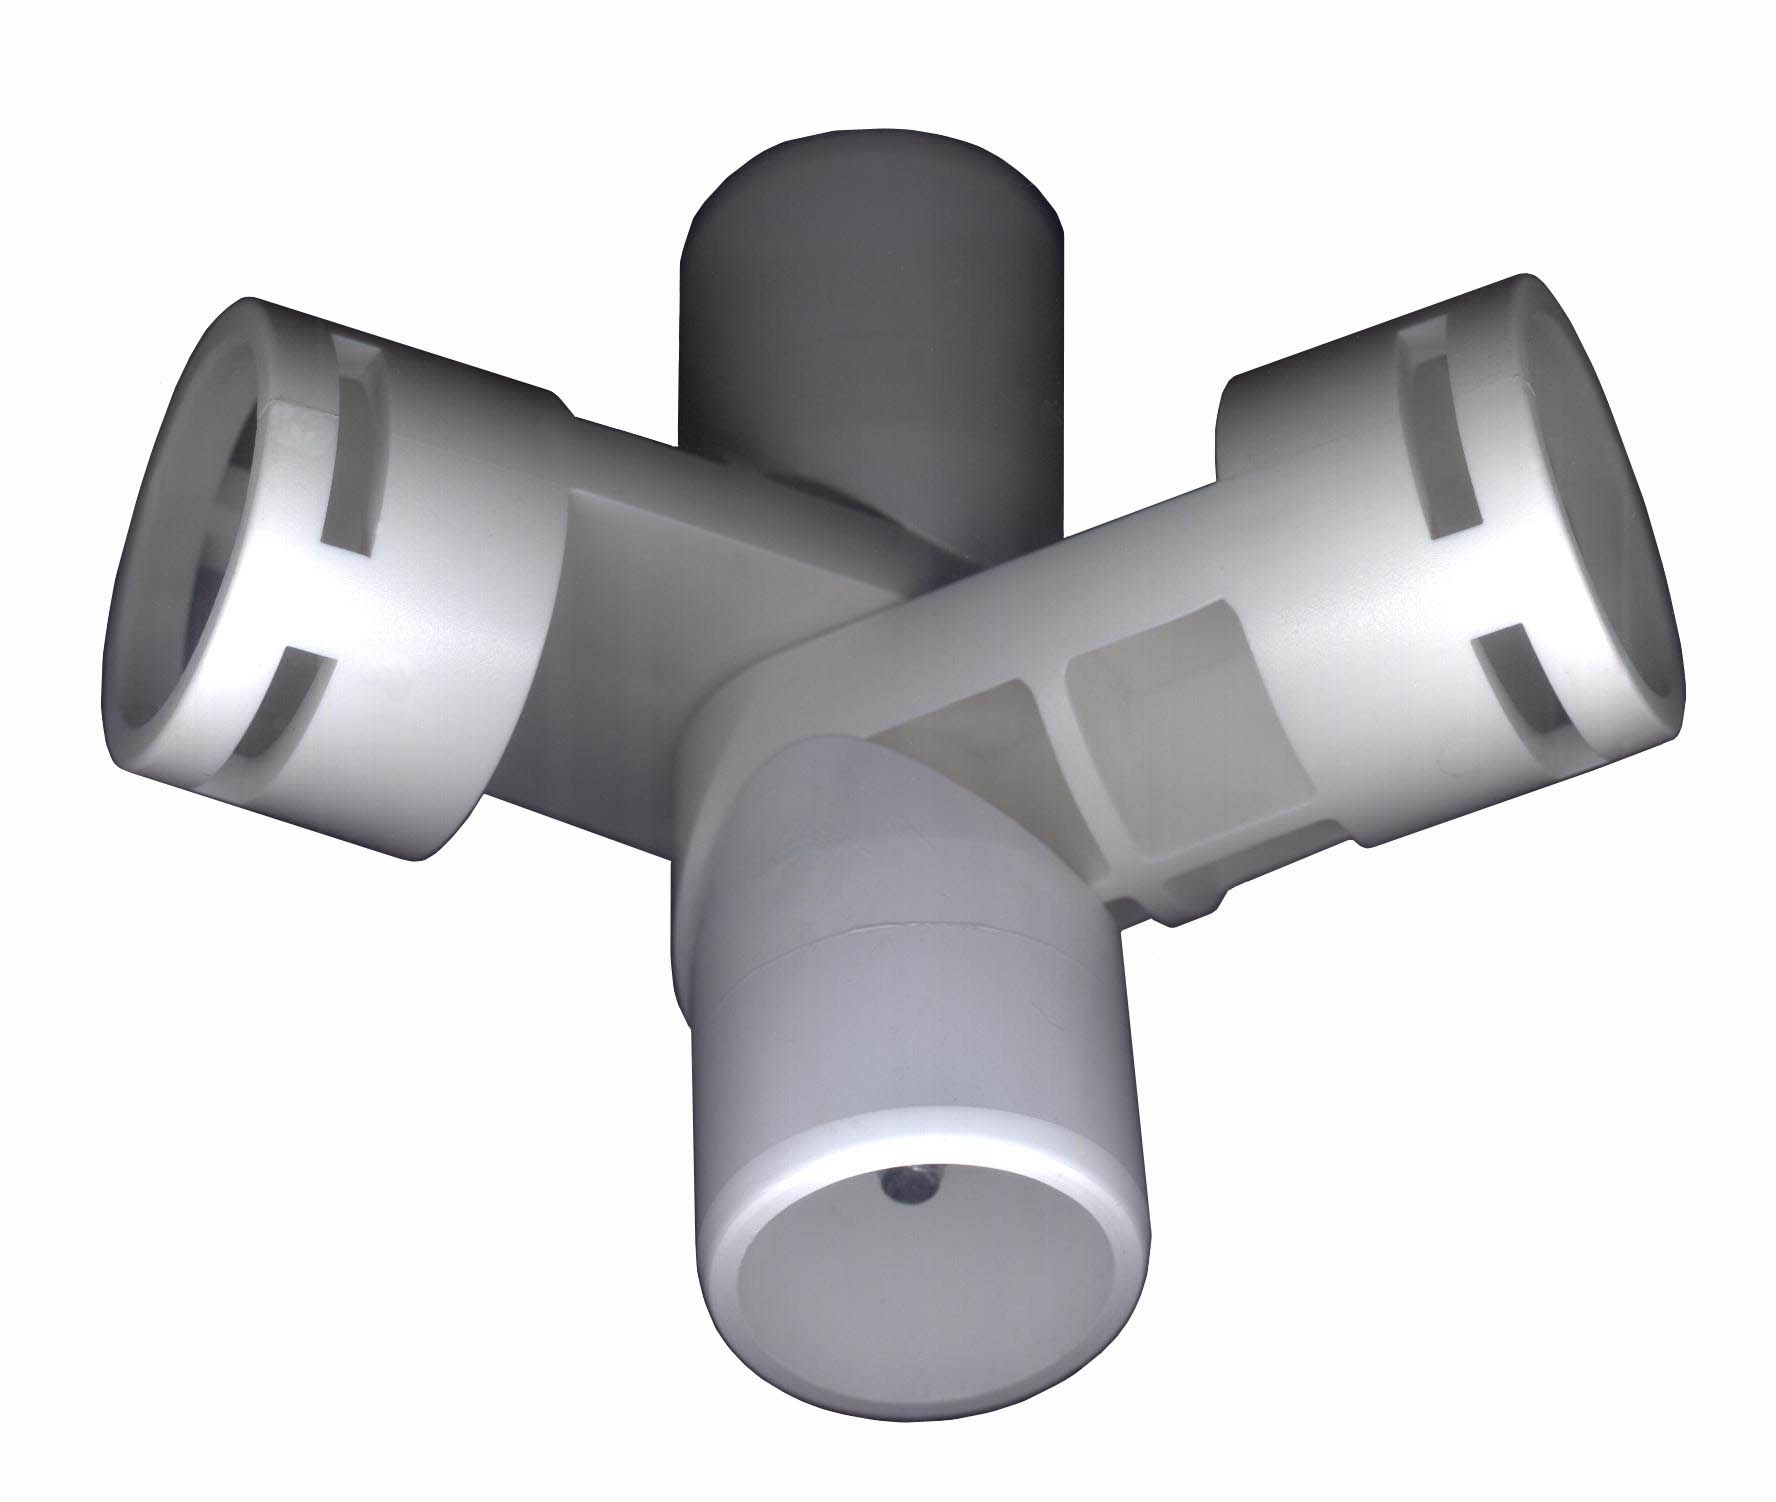 White pvc fittings creative shelters adjustable way